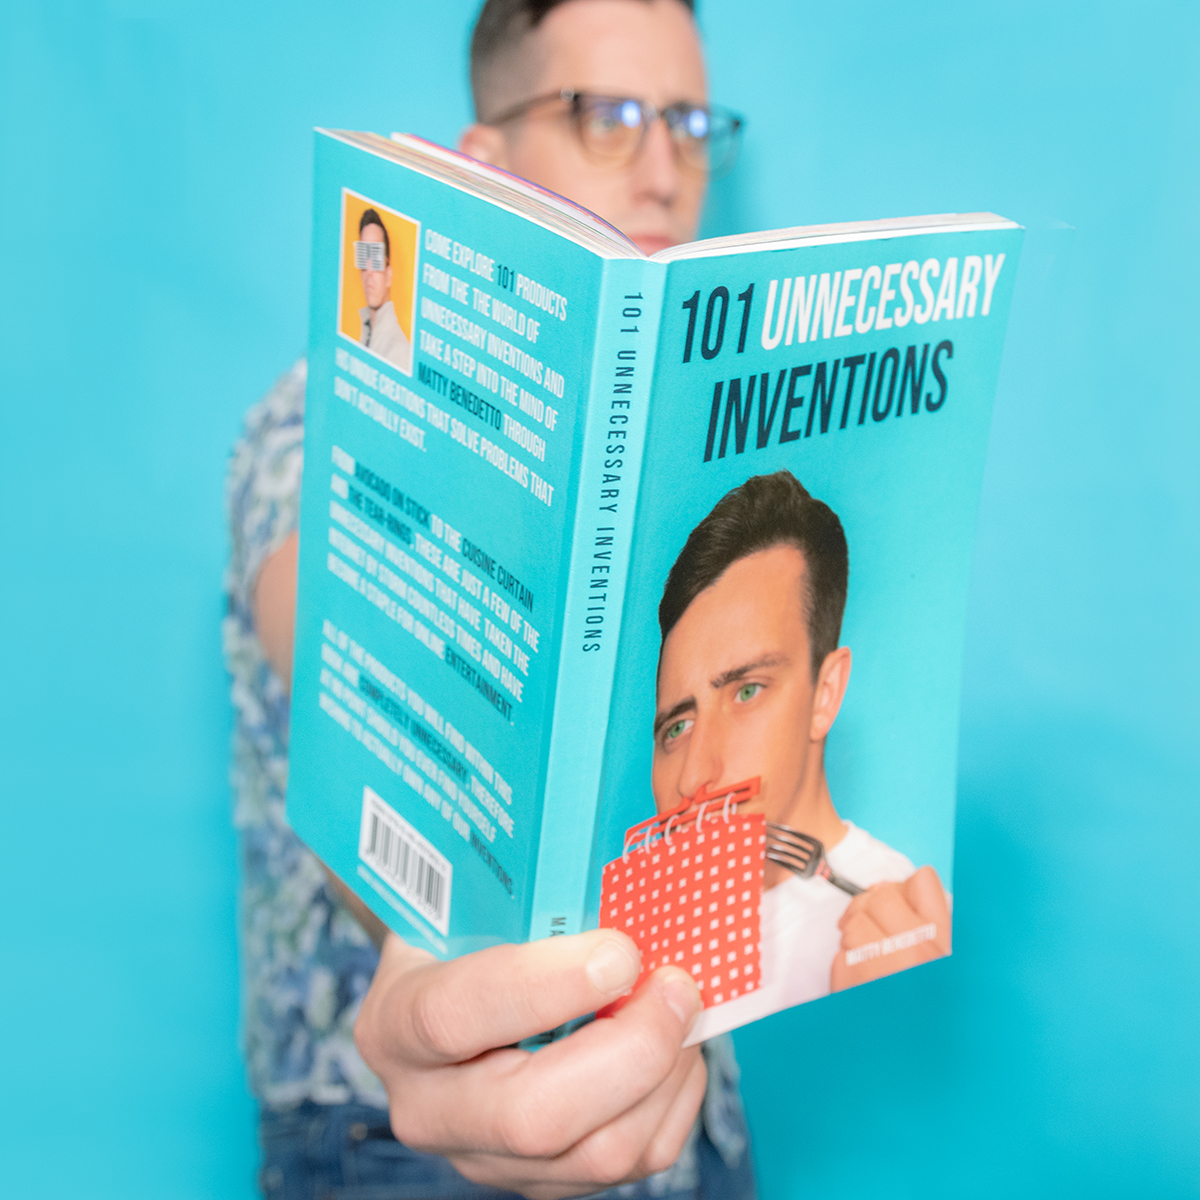 101 Unnecessary Inventions – The Book by Unnecessary Inventions